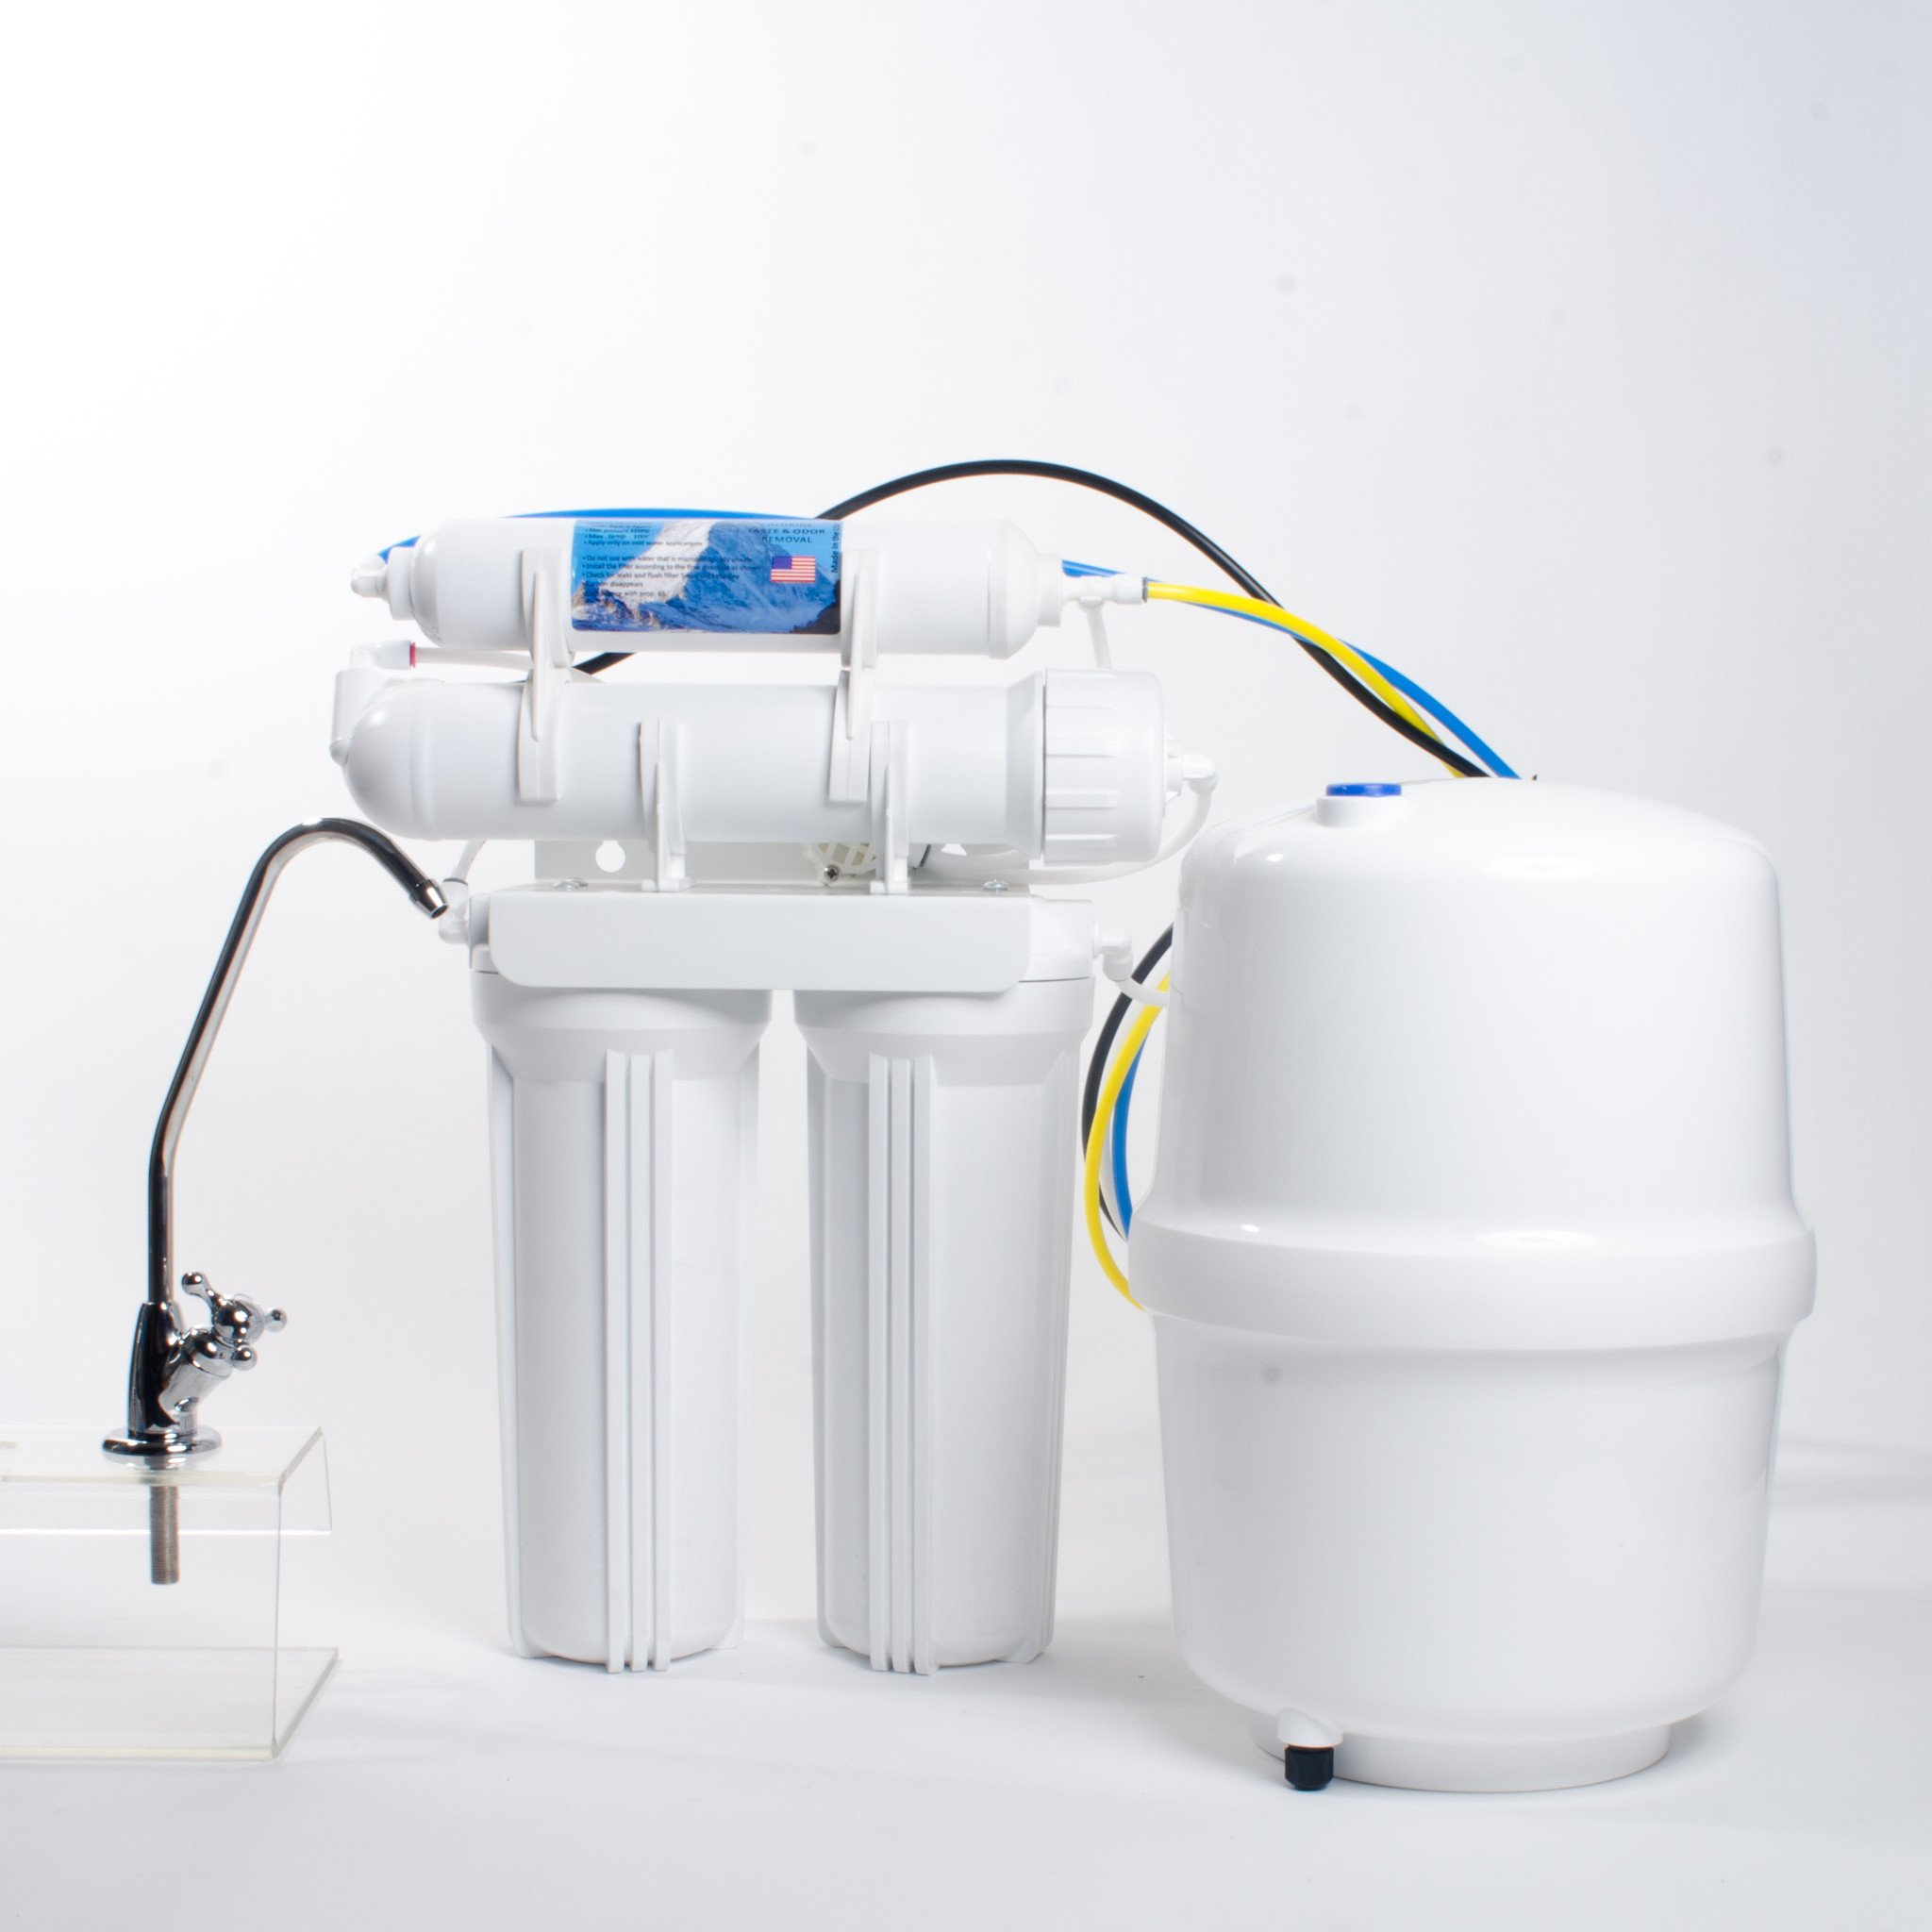 4-Stage Reverse Osmosis Water Filtration System - 50 GPD by Anchor USA